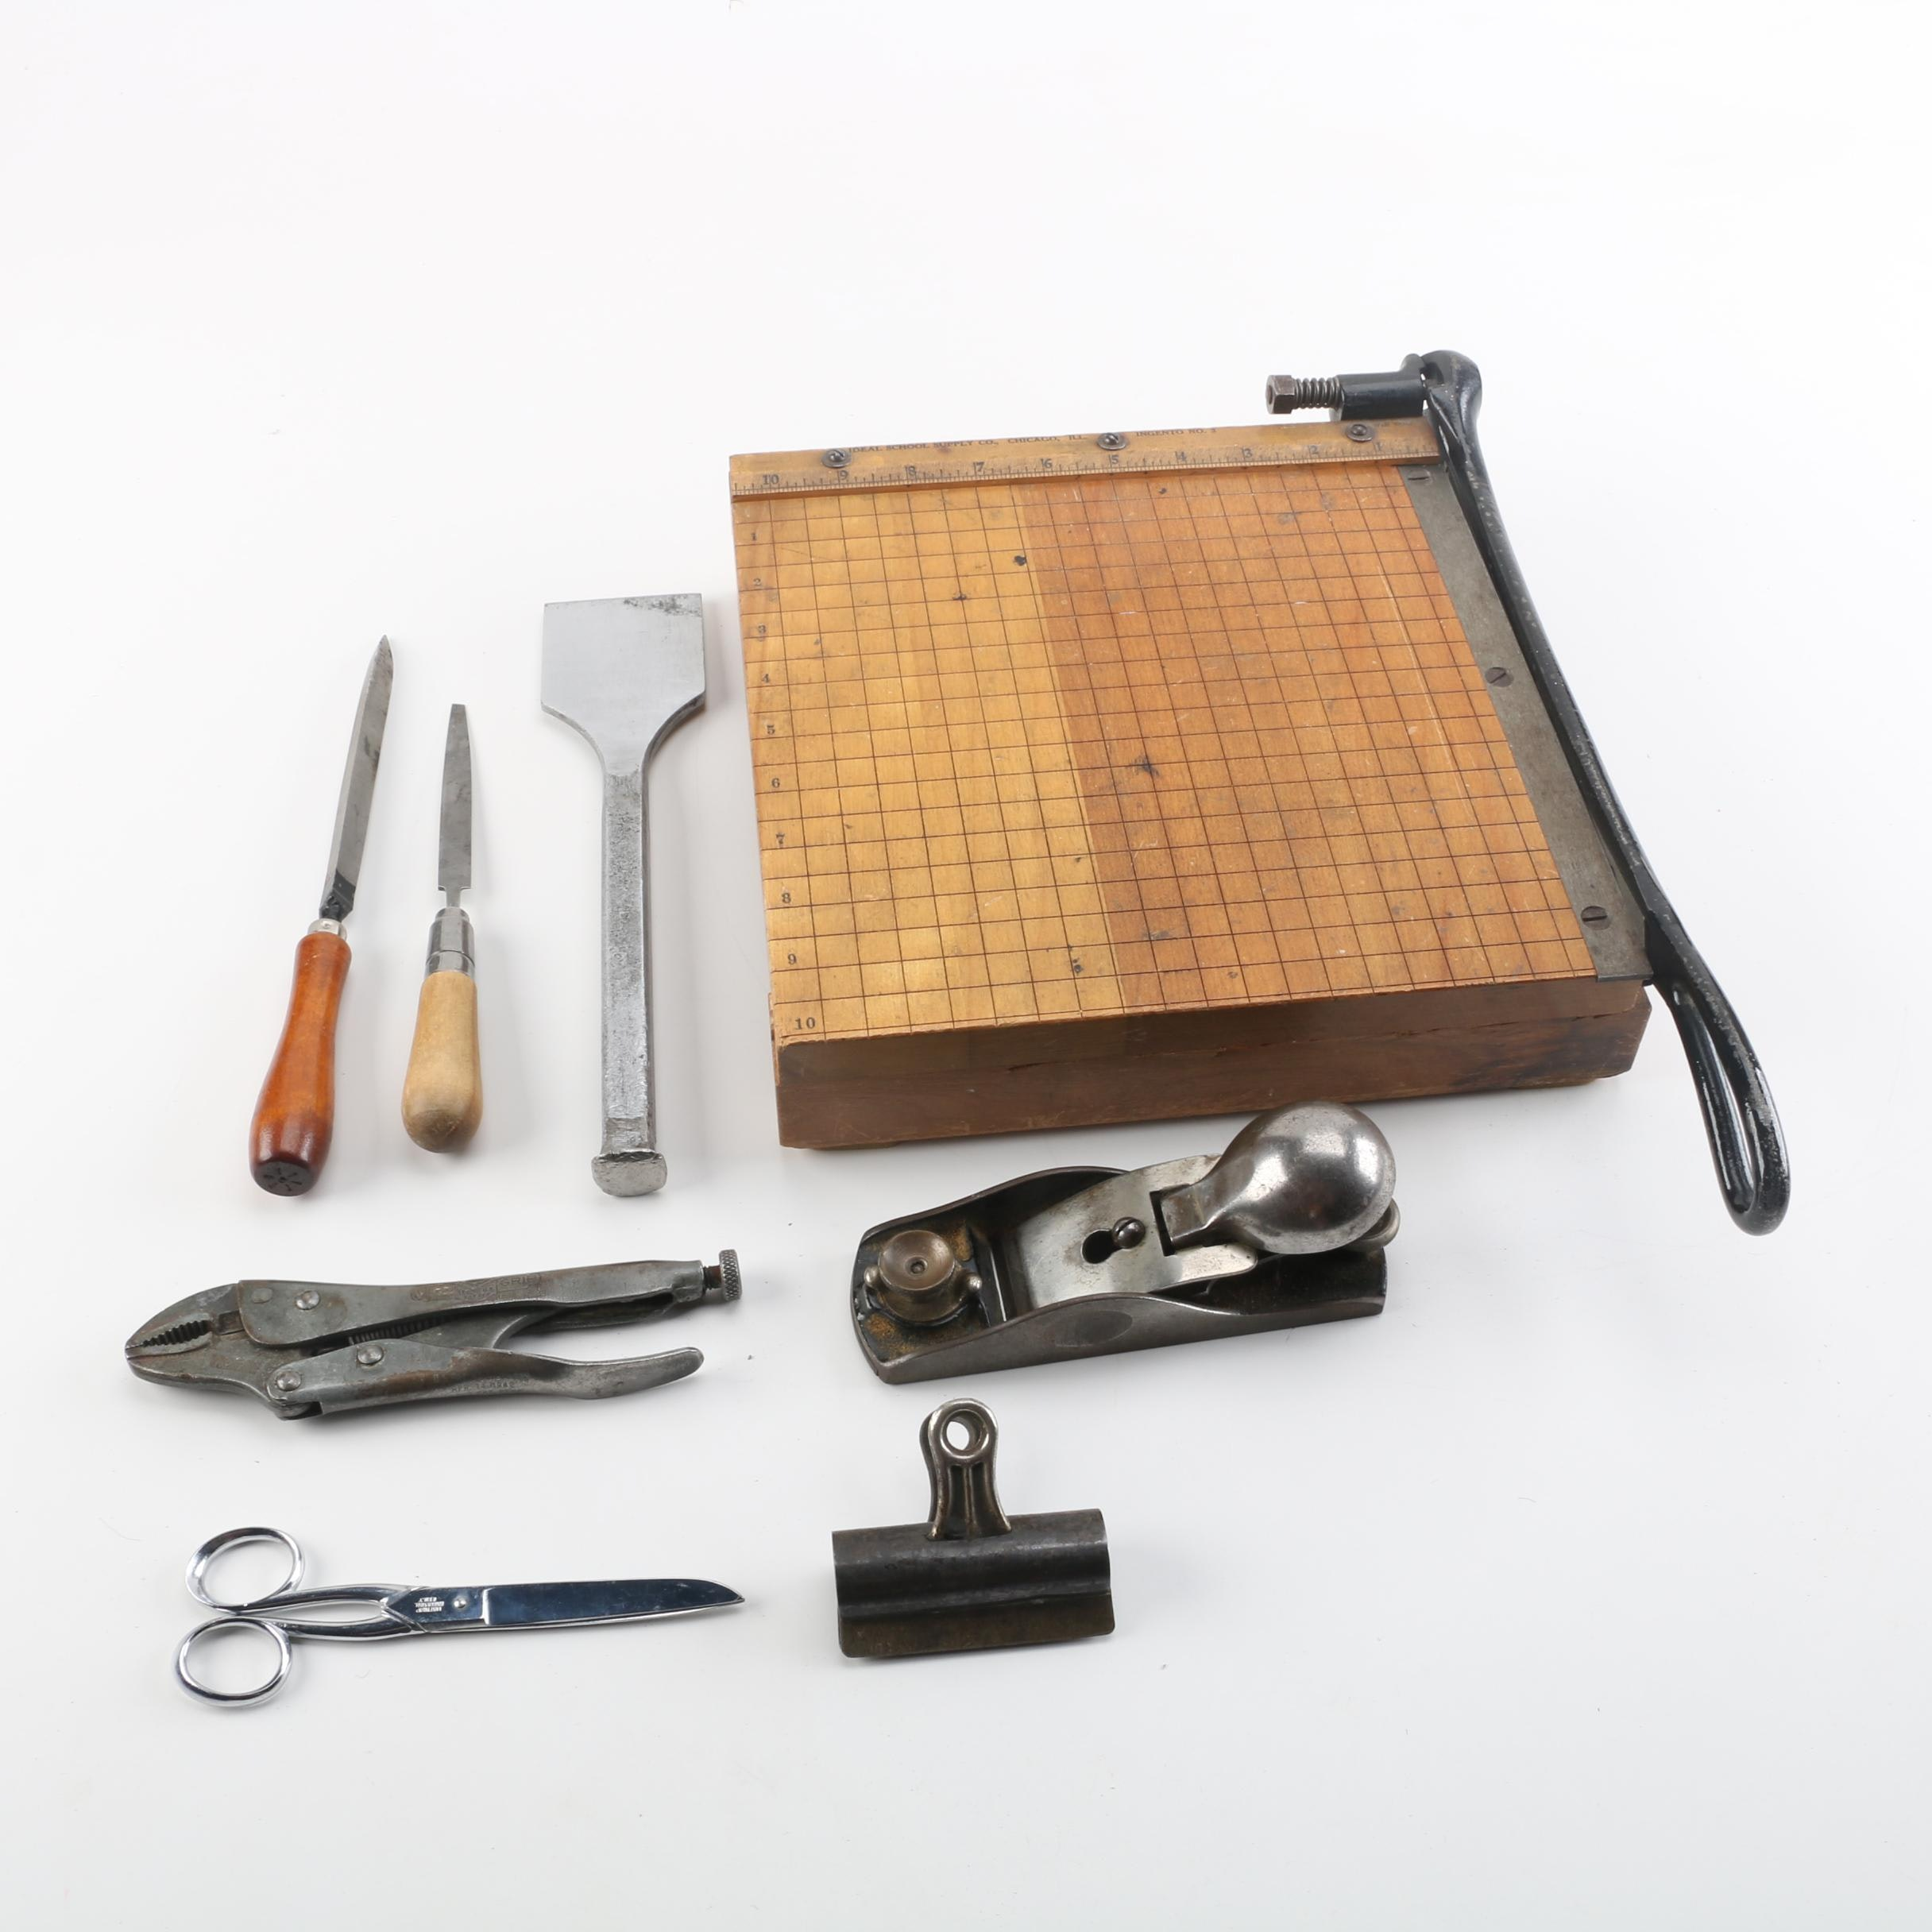 Vintage Ingento No. 3 Paper Cutter and Other Tools